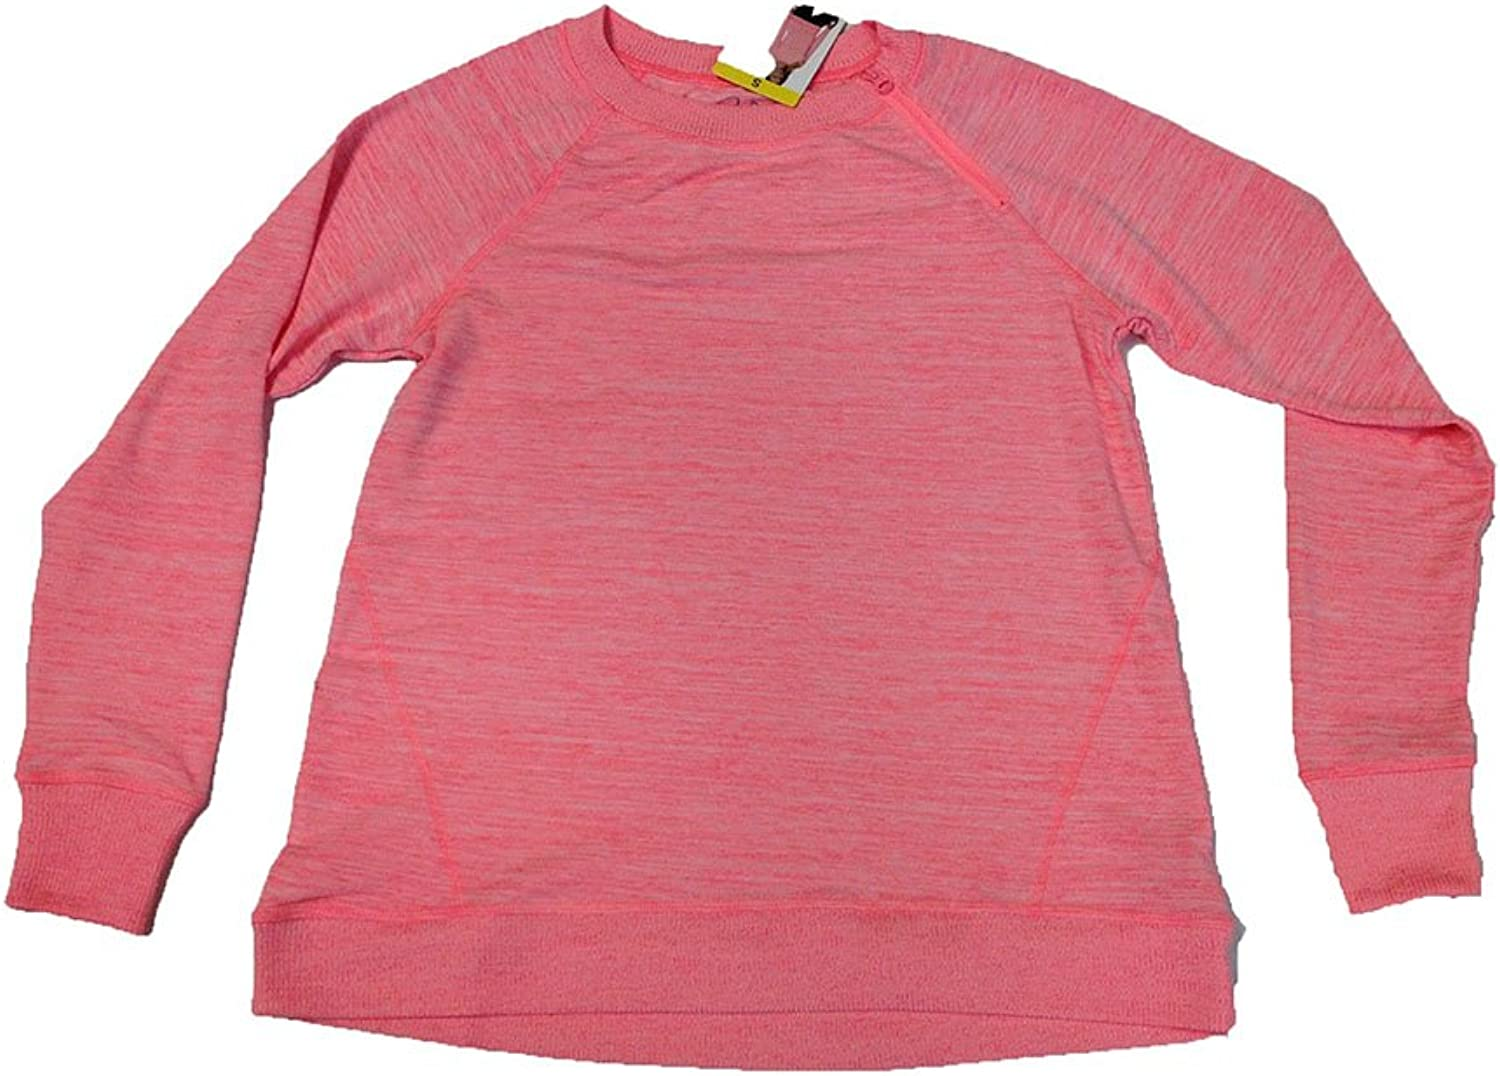 Gerry Women's Long Sleeve Sweater. color Desert pink. Size  Small.